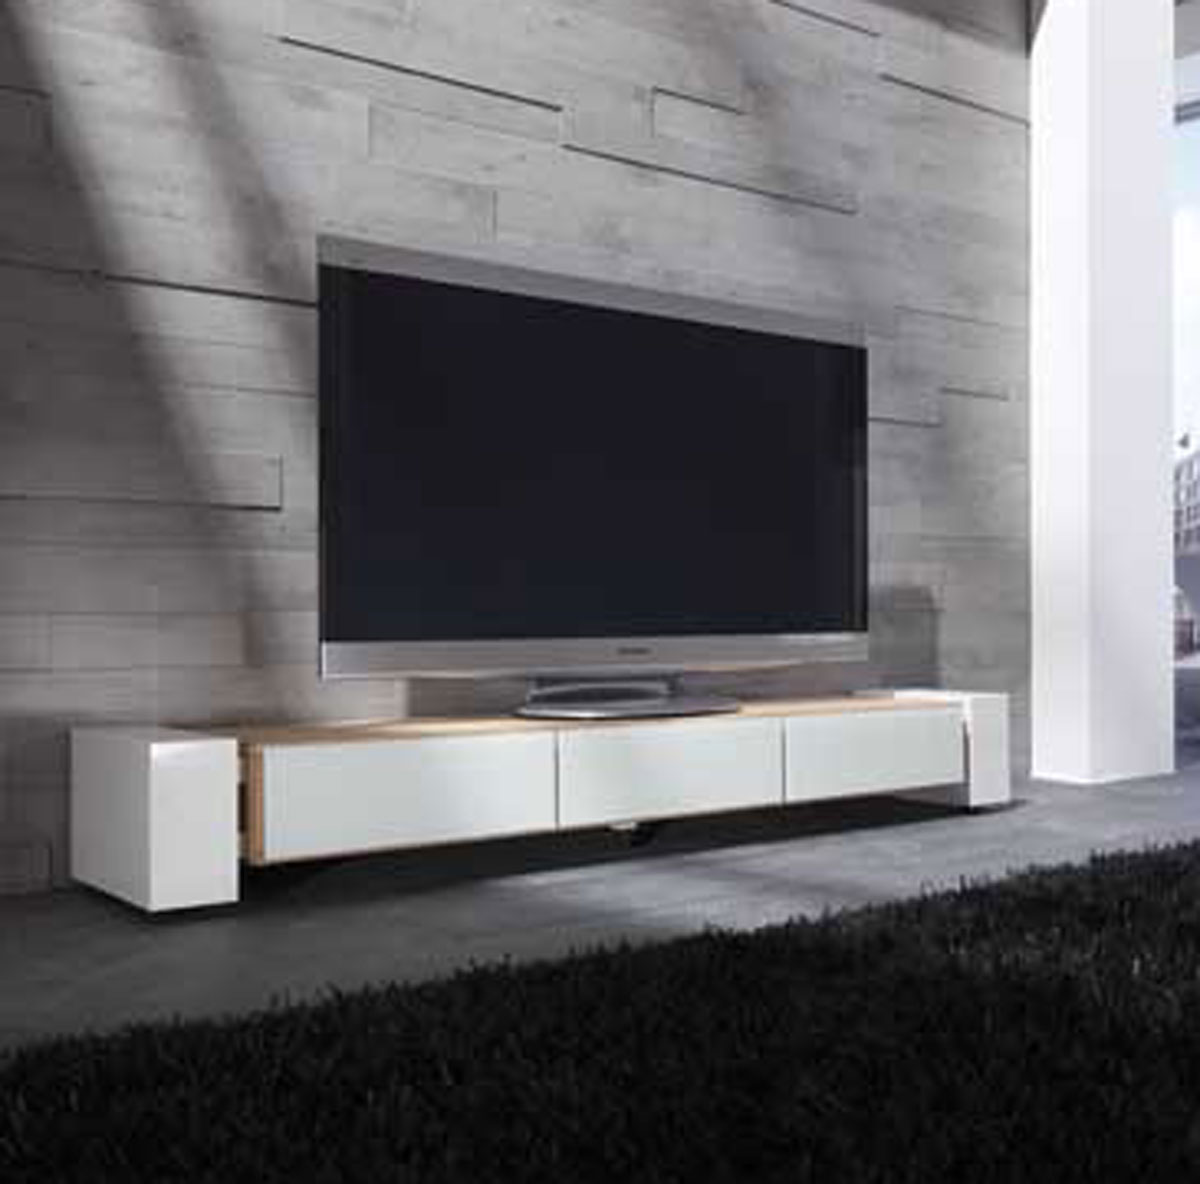 Hifi Racks Archive TV Mbel Und Hifi Mbel Guide